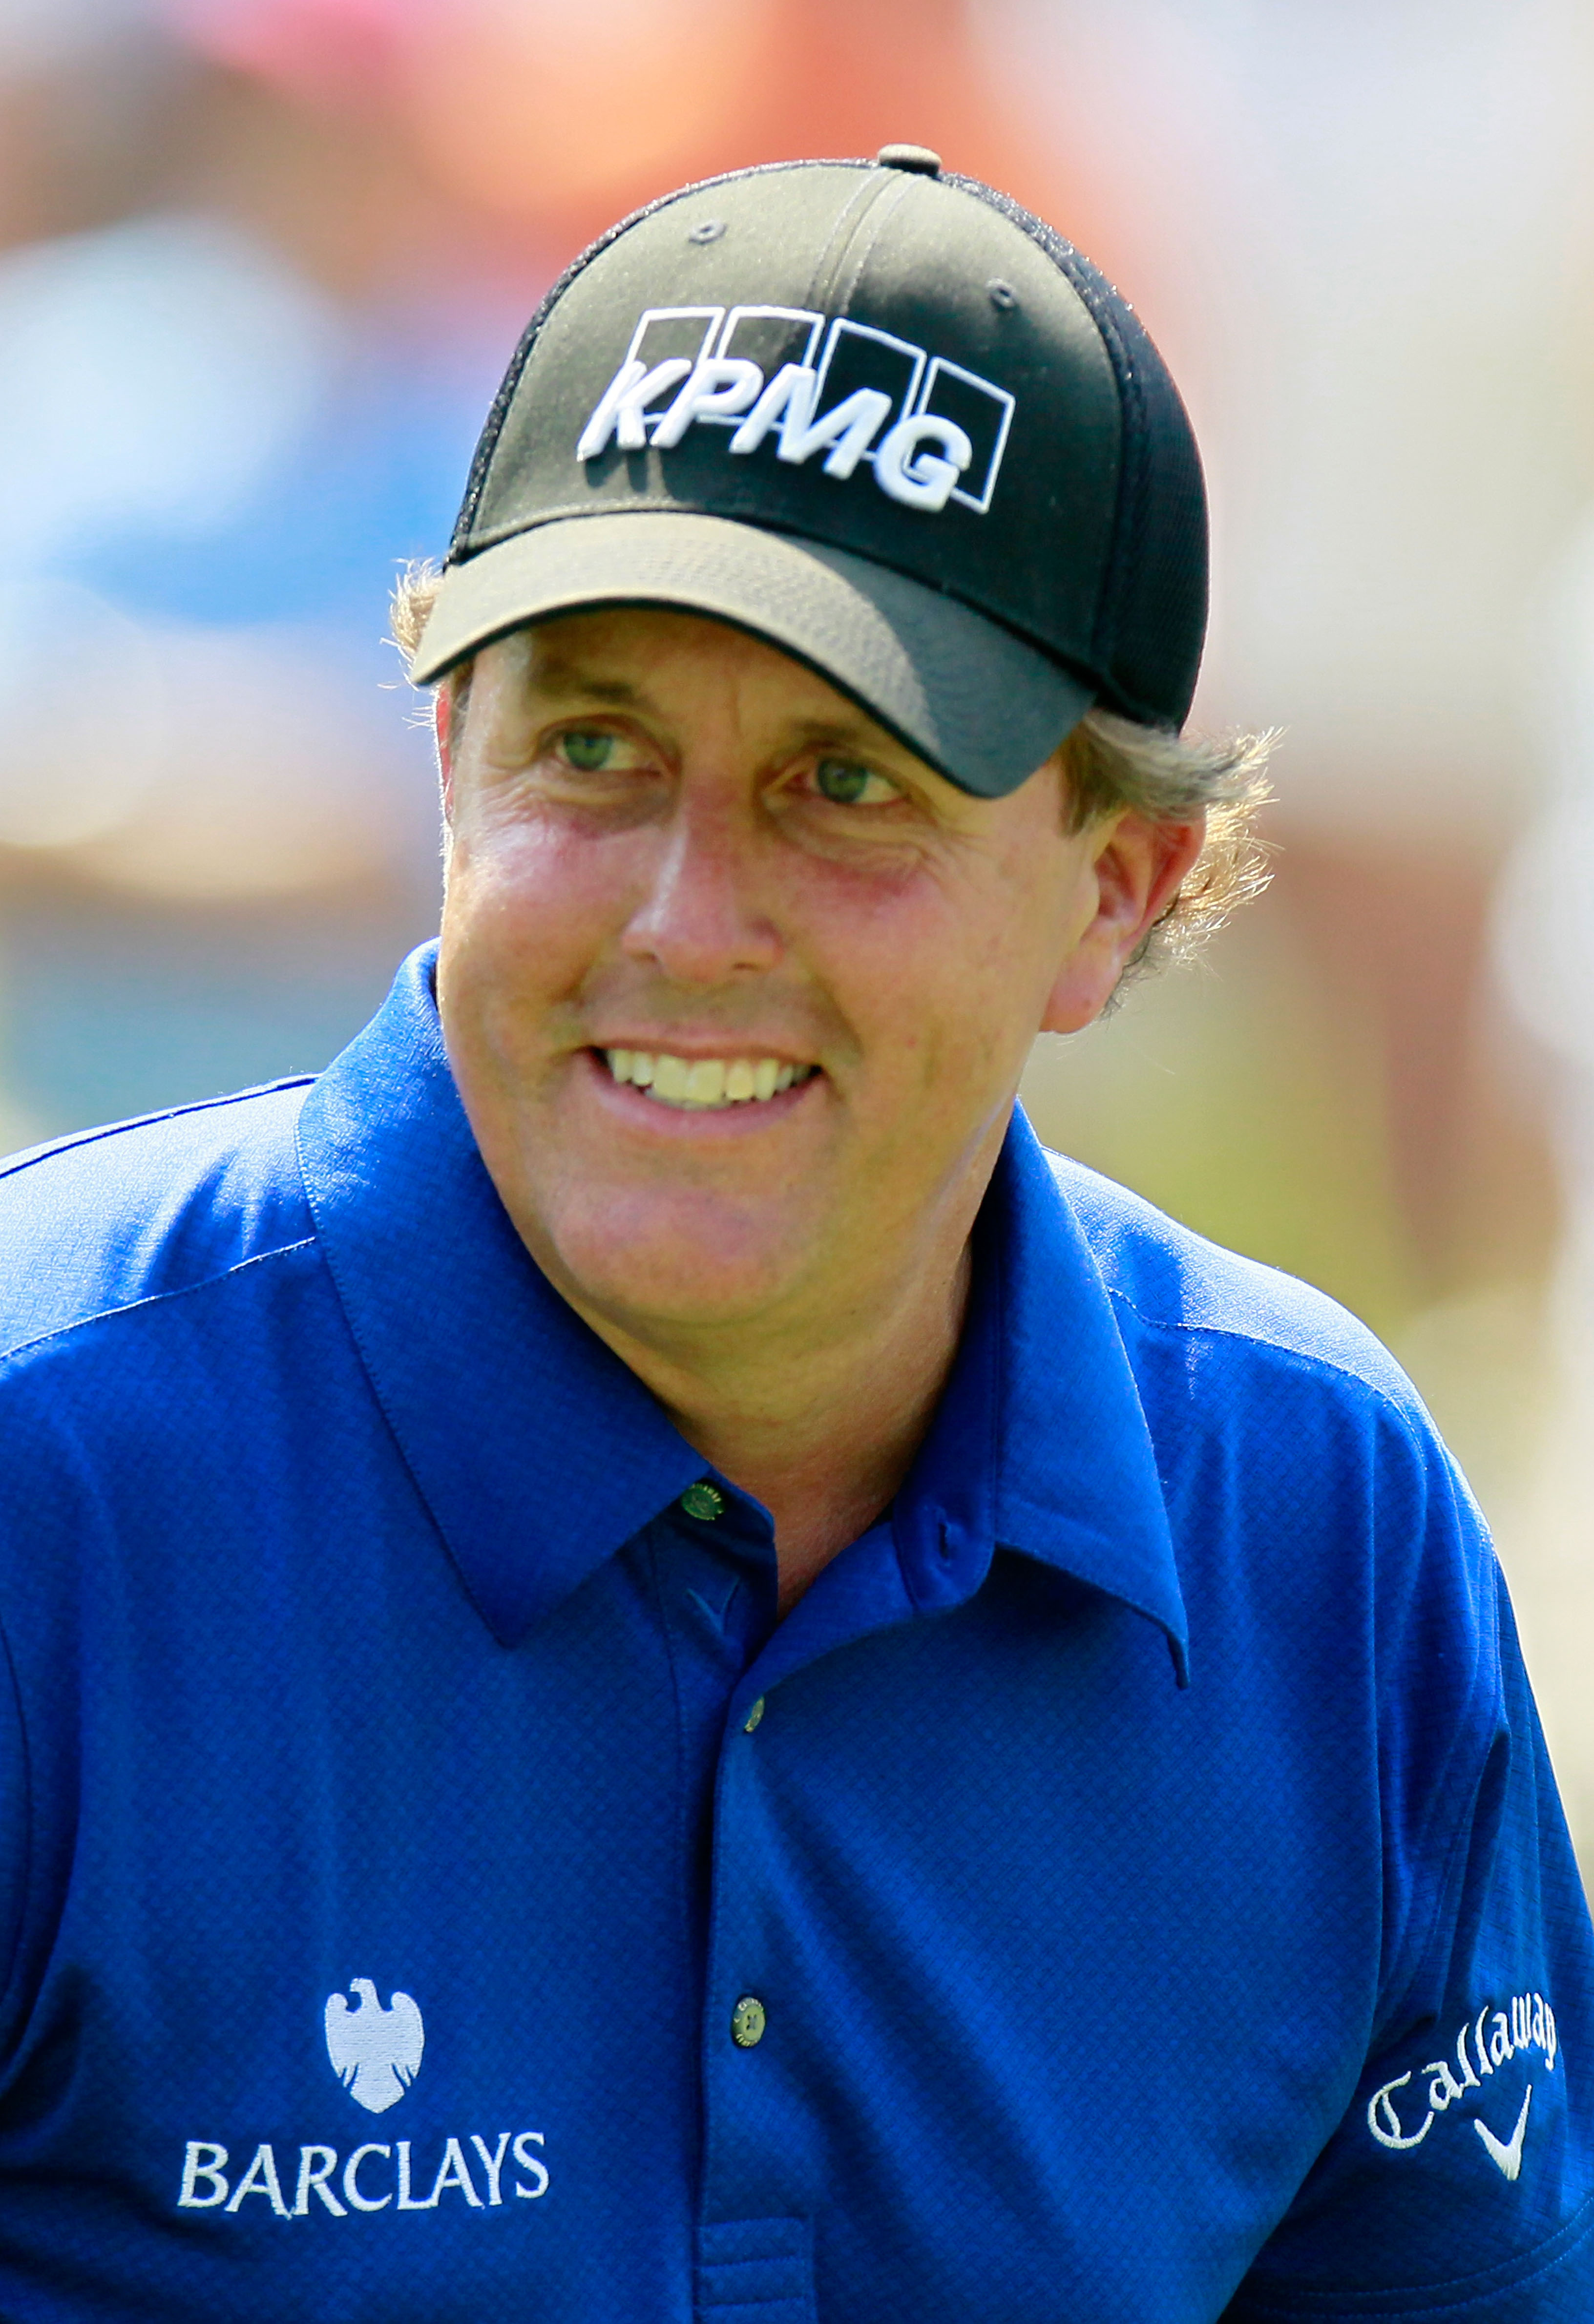 ATLANTA - SEPTEMBER 23:  Phil Mickelson smiles as he walks off the eighth tee during the first round of THE TOUR Championship presented by Coca-Cola at East Lake Golf Club on September 23, 2010 in Atlanta, Georgia.  (Photo by Kevin C. Cox/Getty Images)